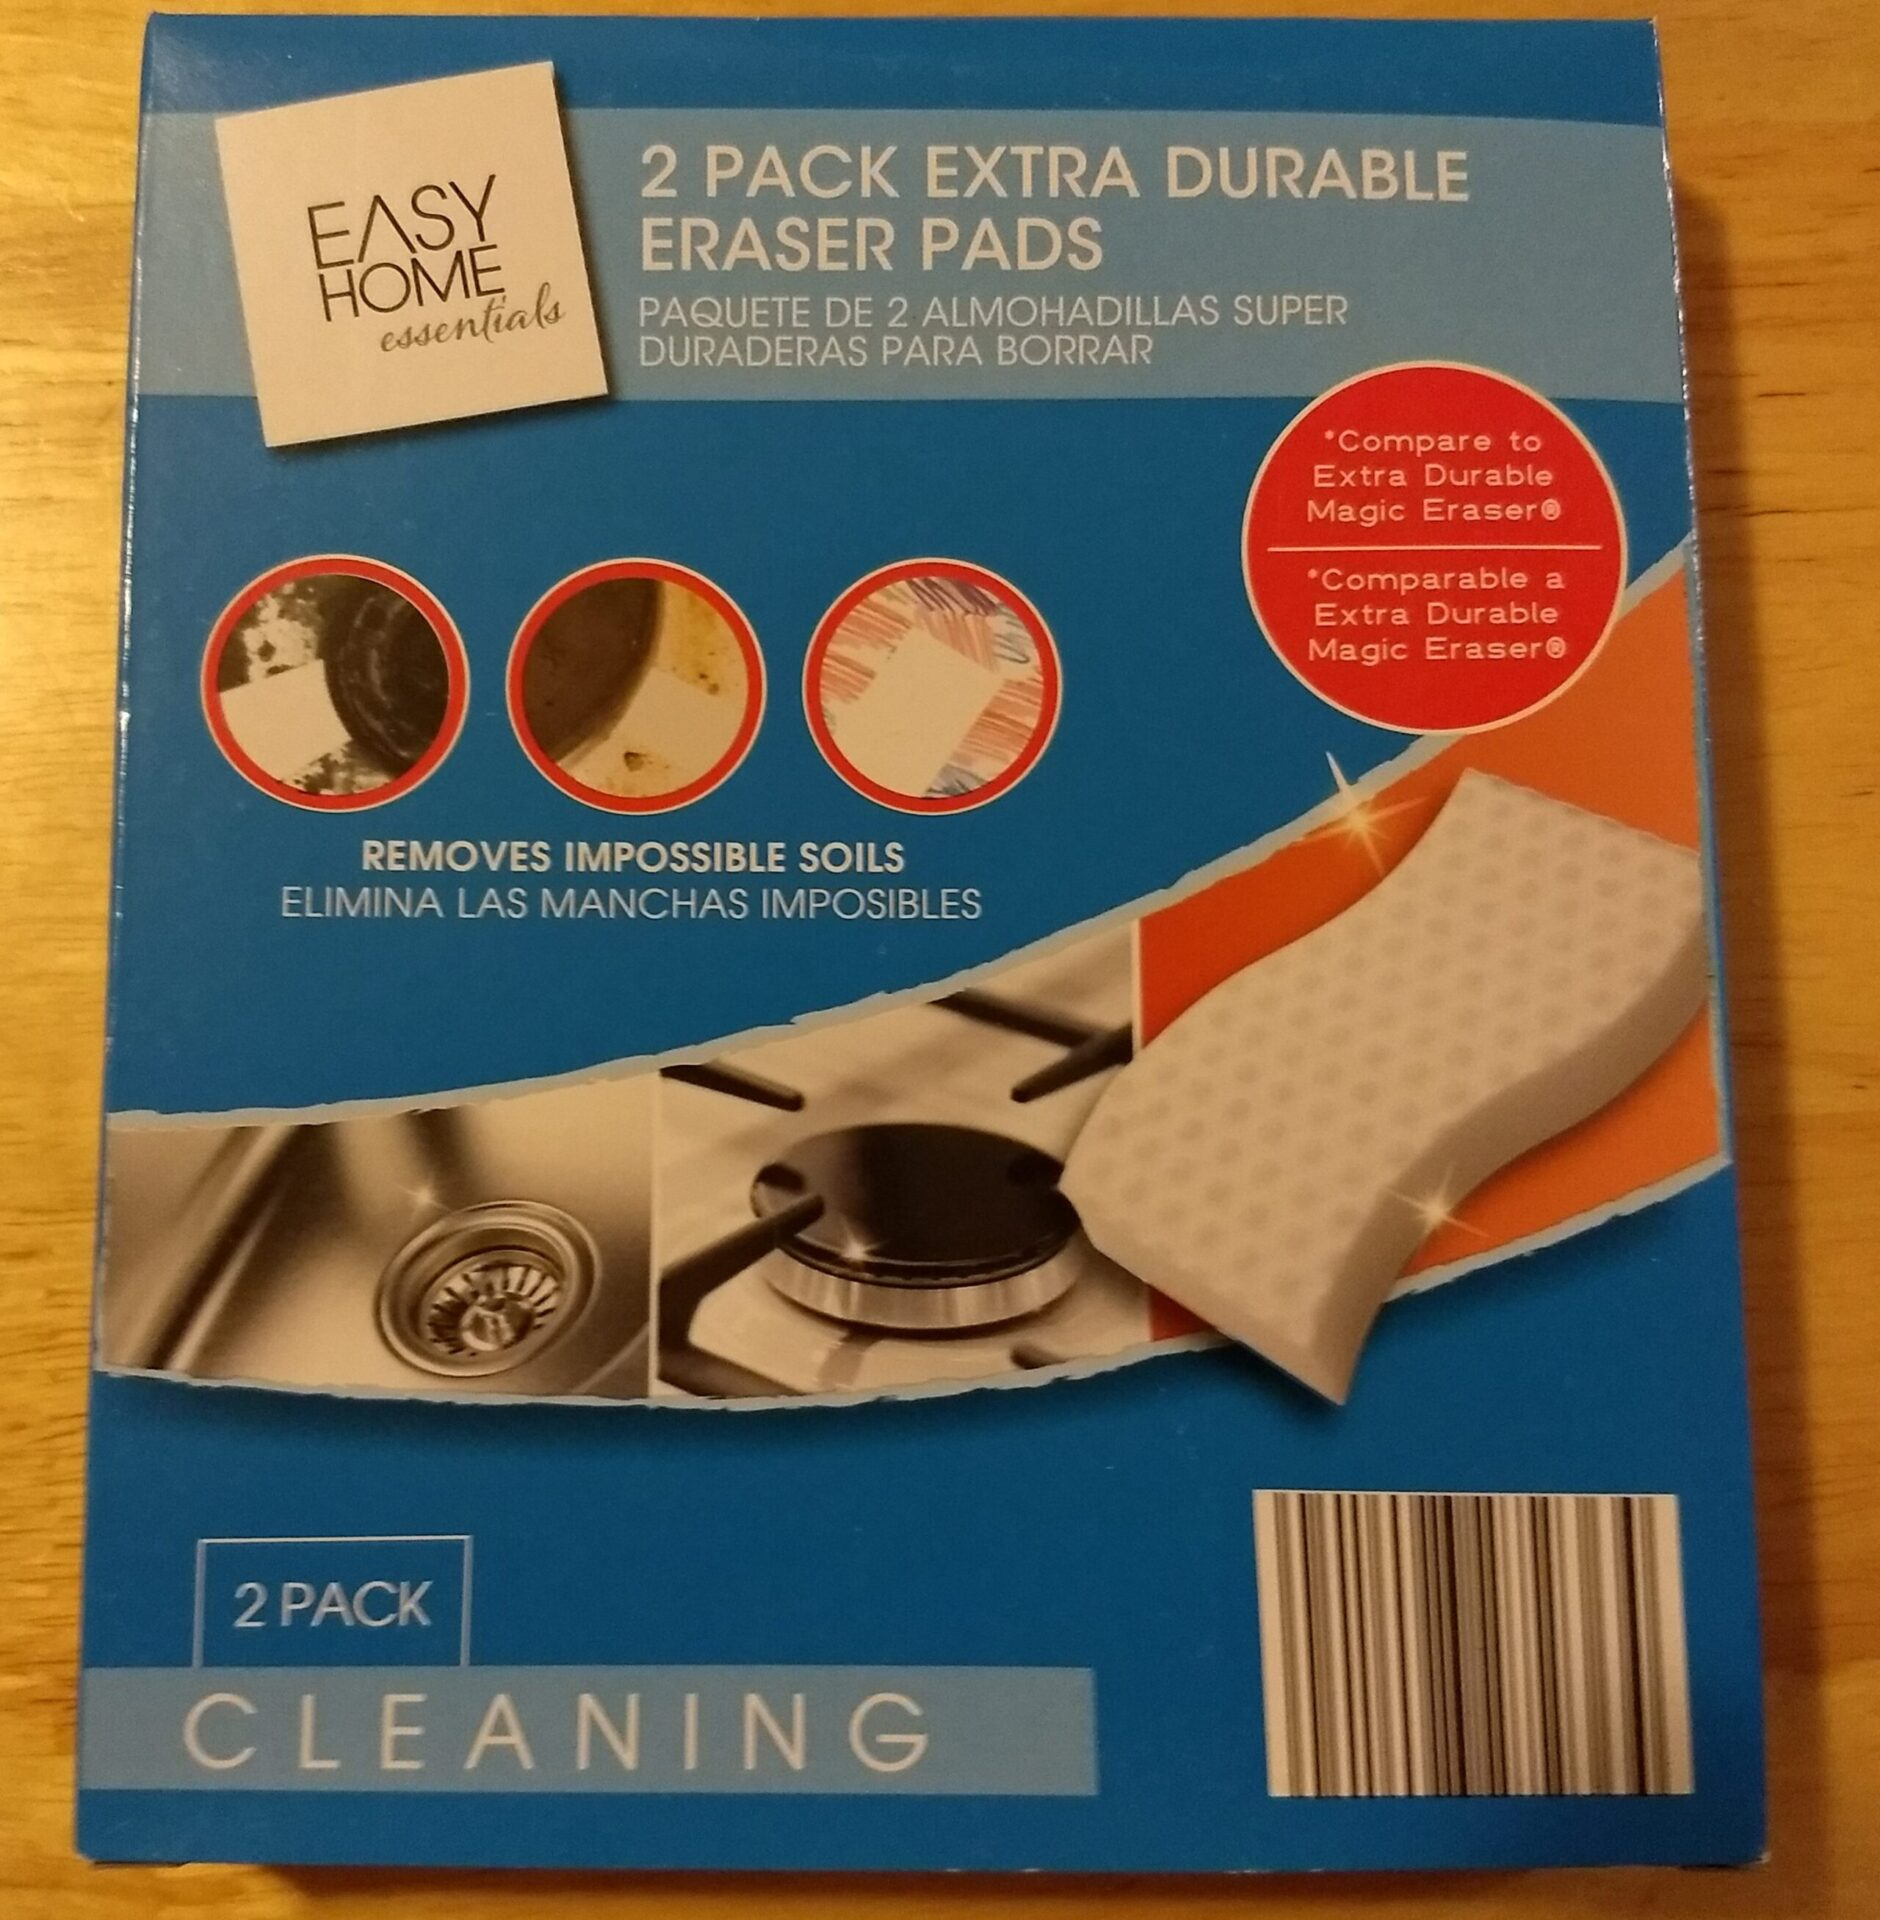 Easy Home Essentials Extra Durable Eraser Pads | ALDI REVIEWER